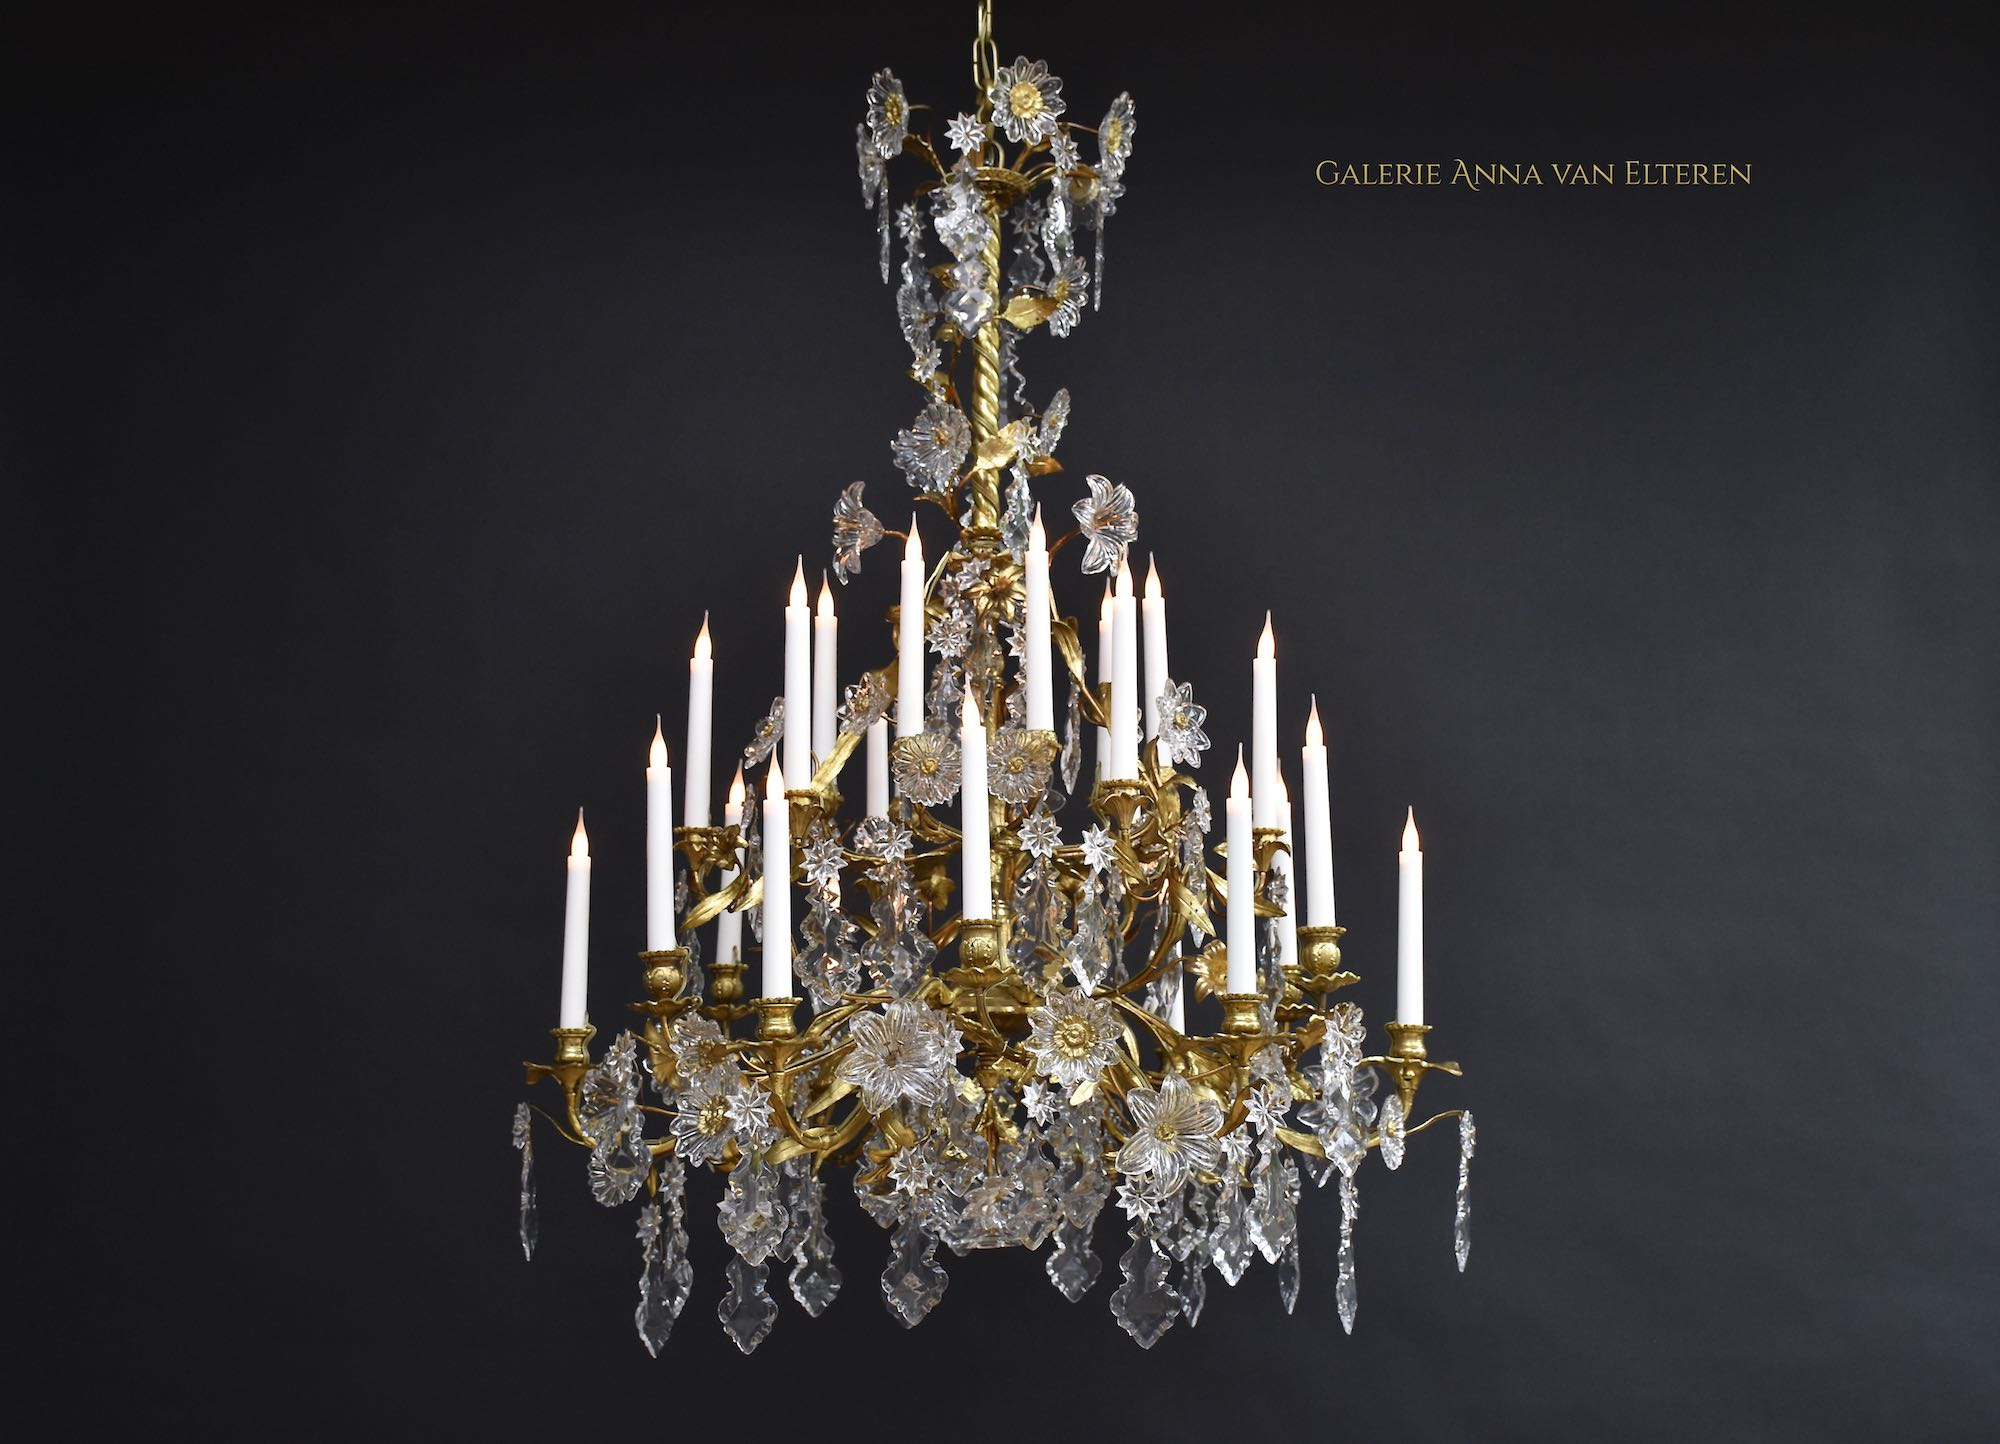 19th century large French floral chandelier with Baccarat crystals